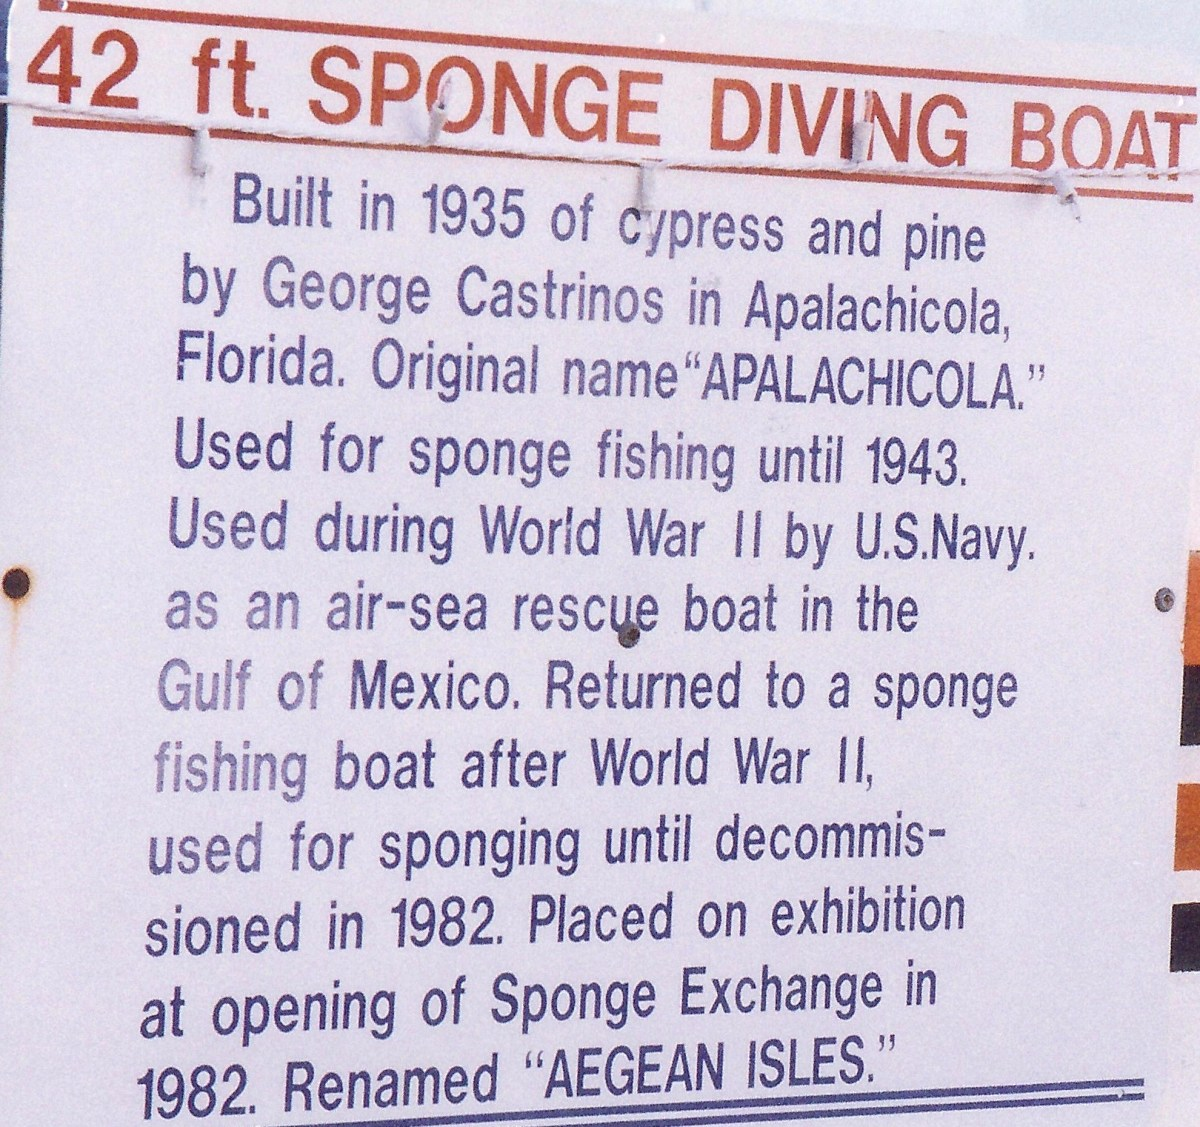 Well known sponge diving boat from that area